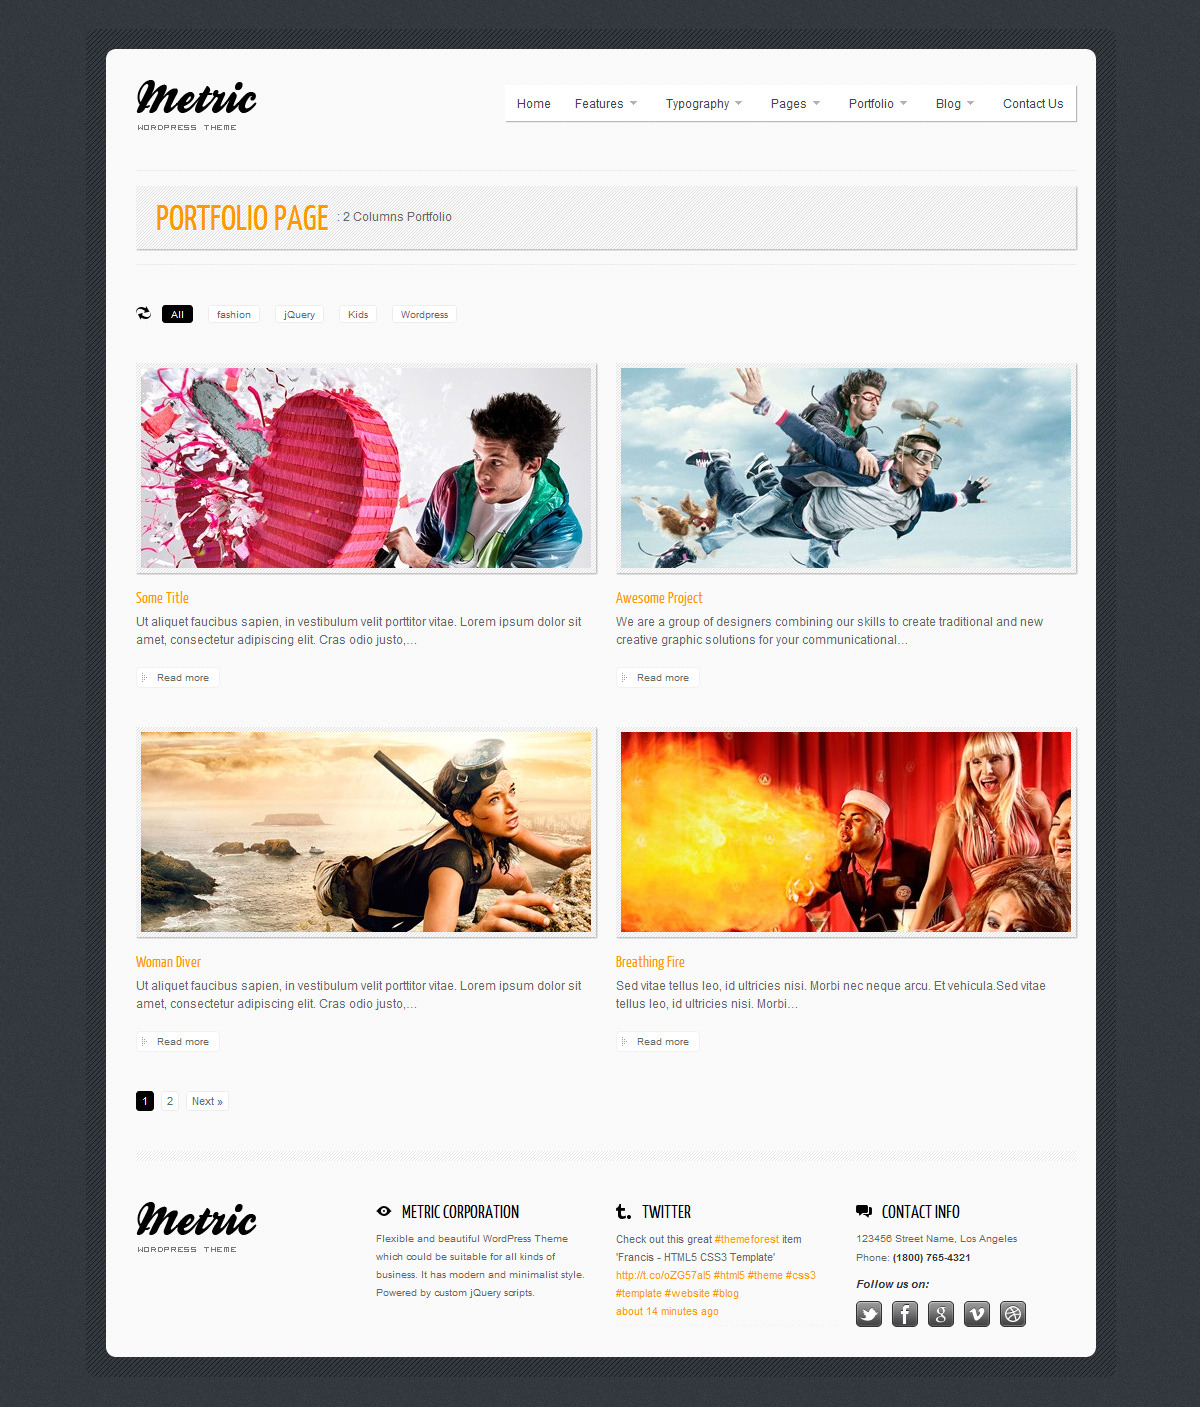 METRIC - Premium WordPress Theme - Portfolio